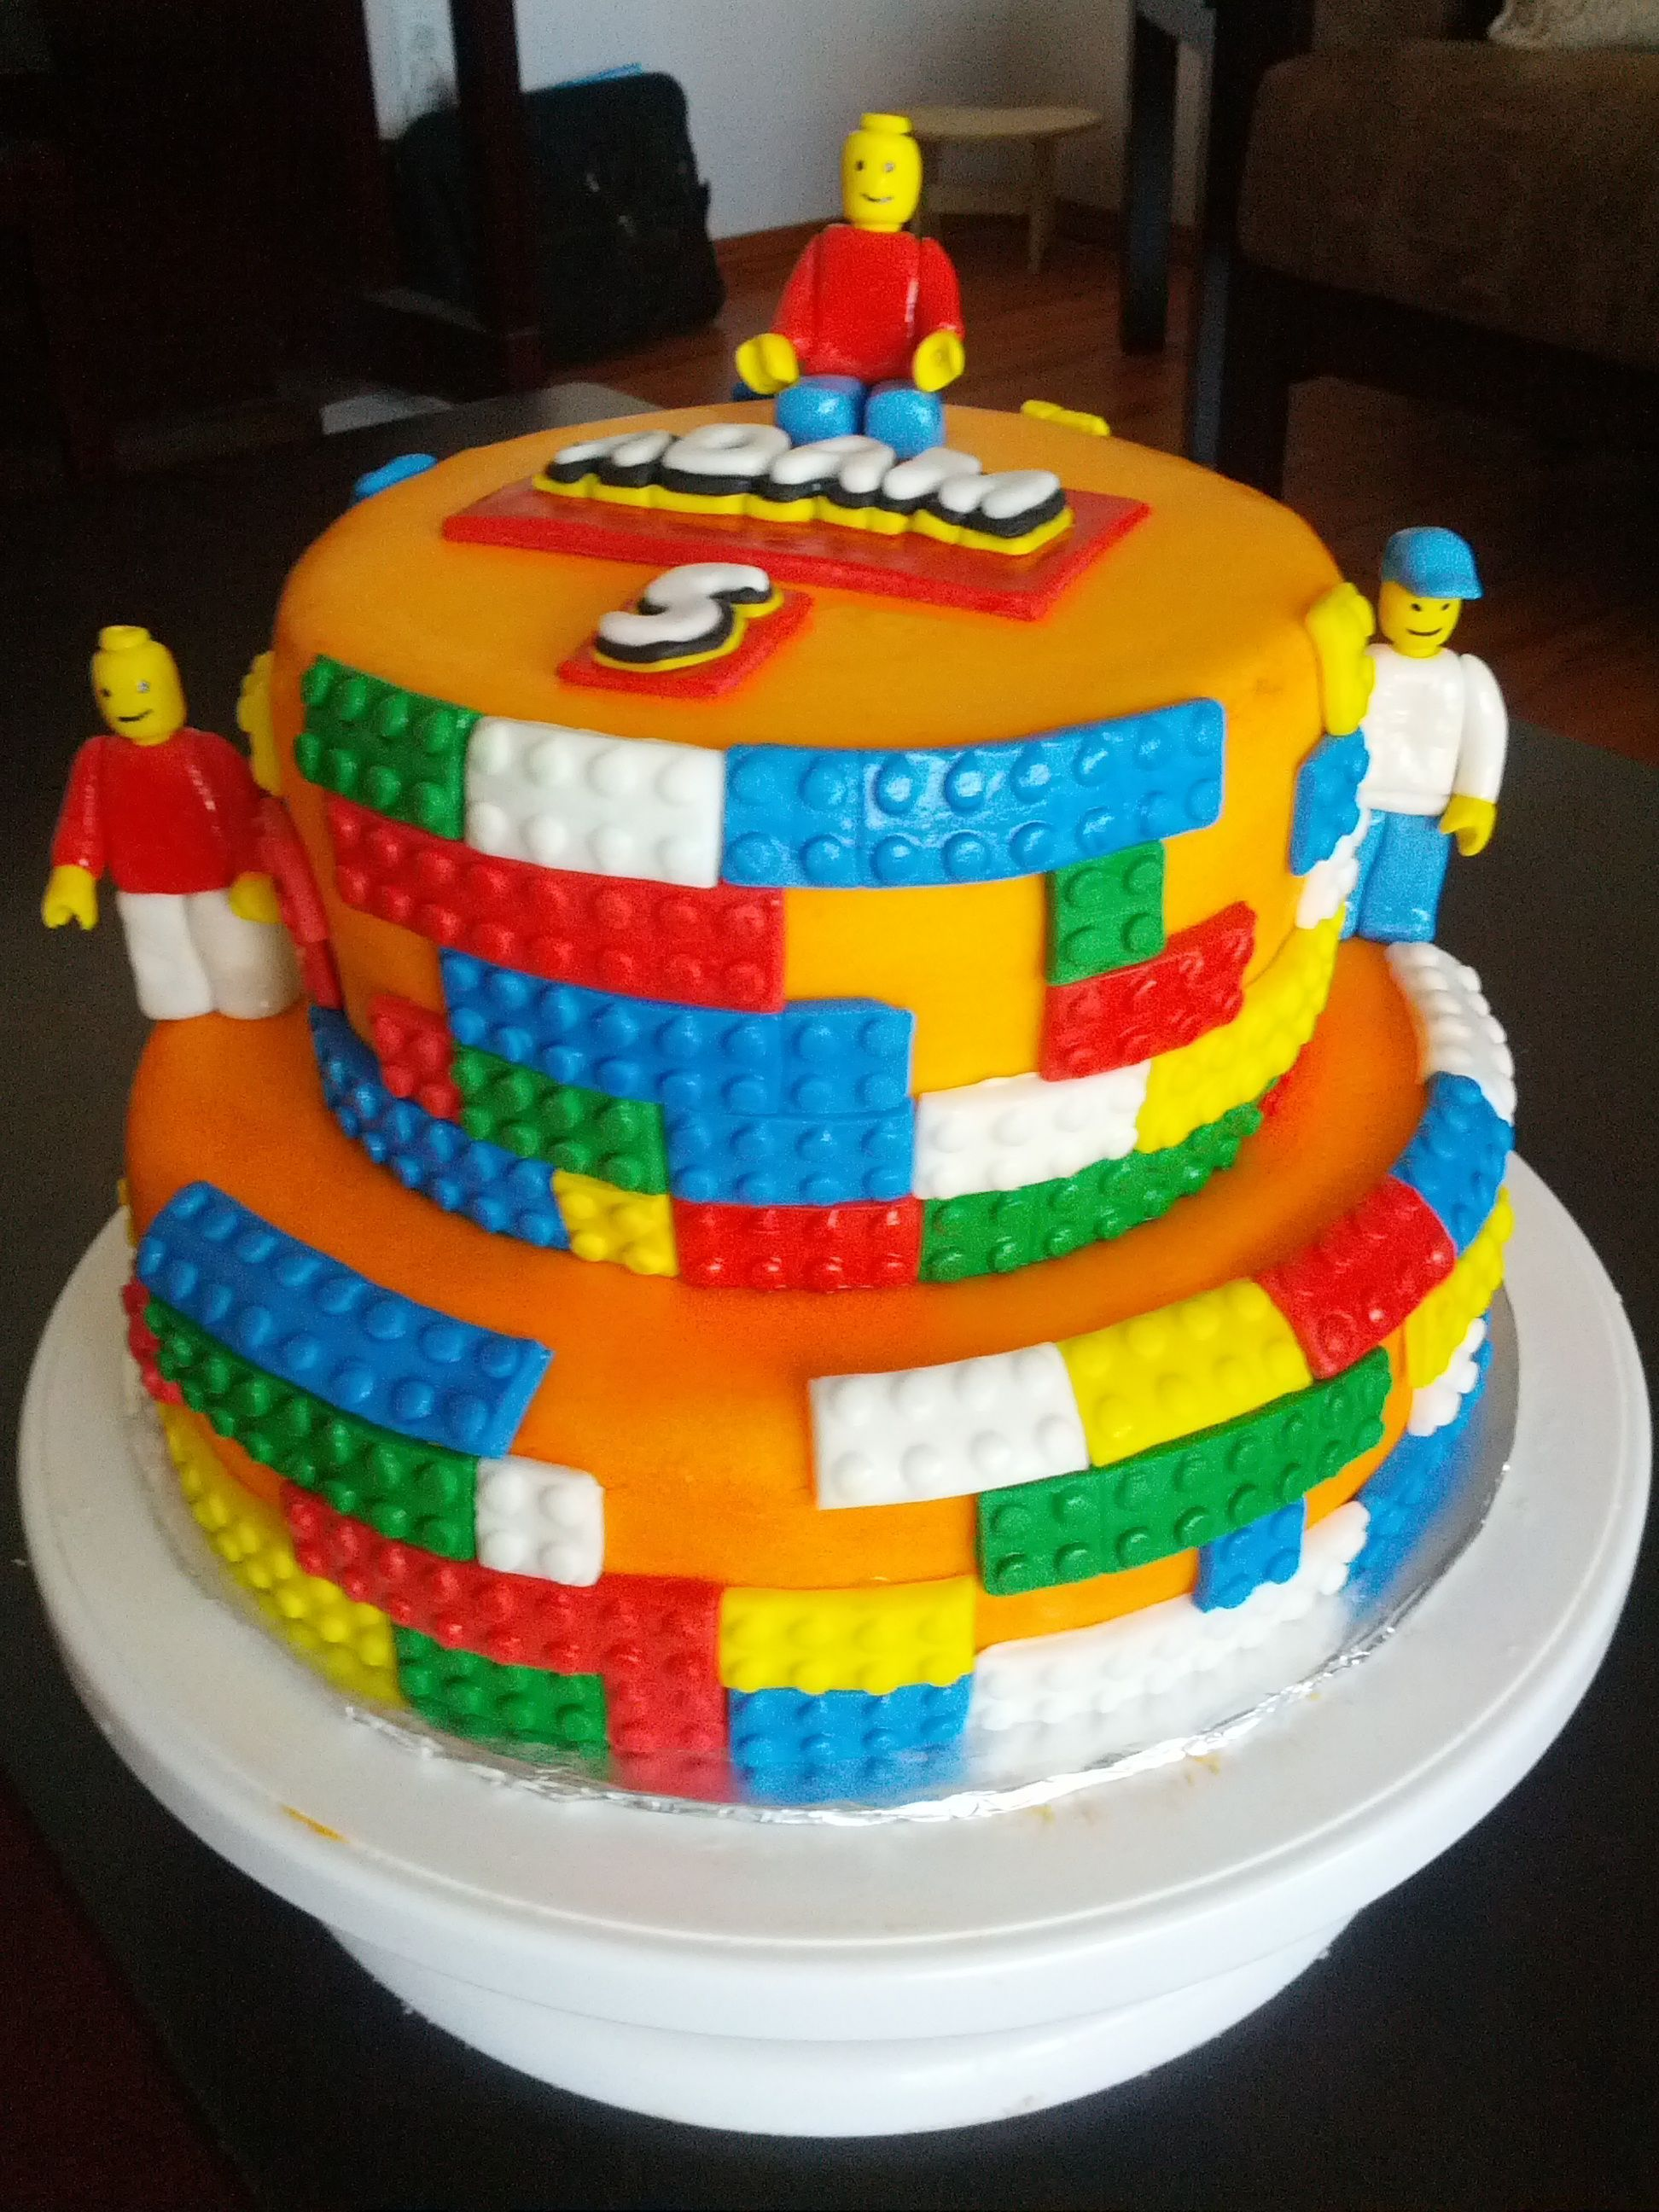 Awe Inspiring Lego Cake Lego Taart Marsepein Taart Taart Funny Birthday Cards Online Barepcheapnameinfo